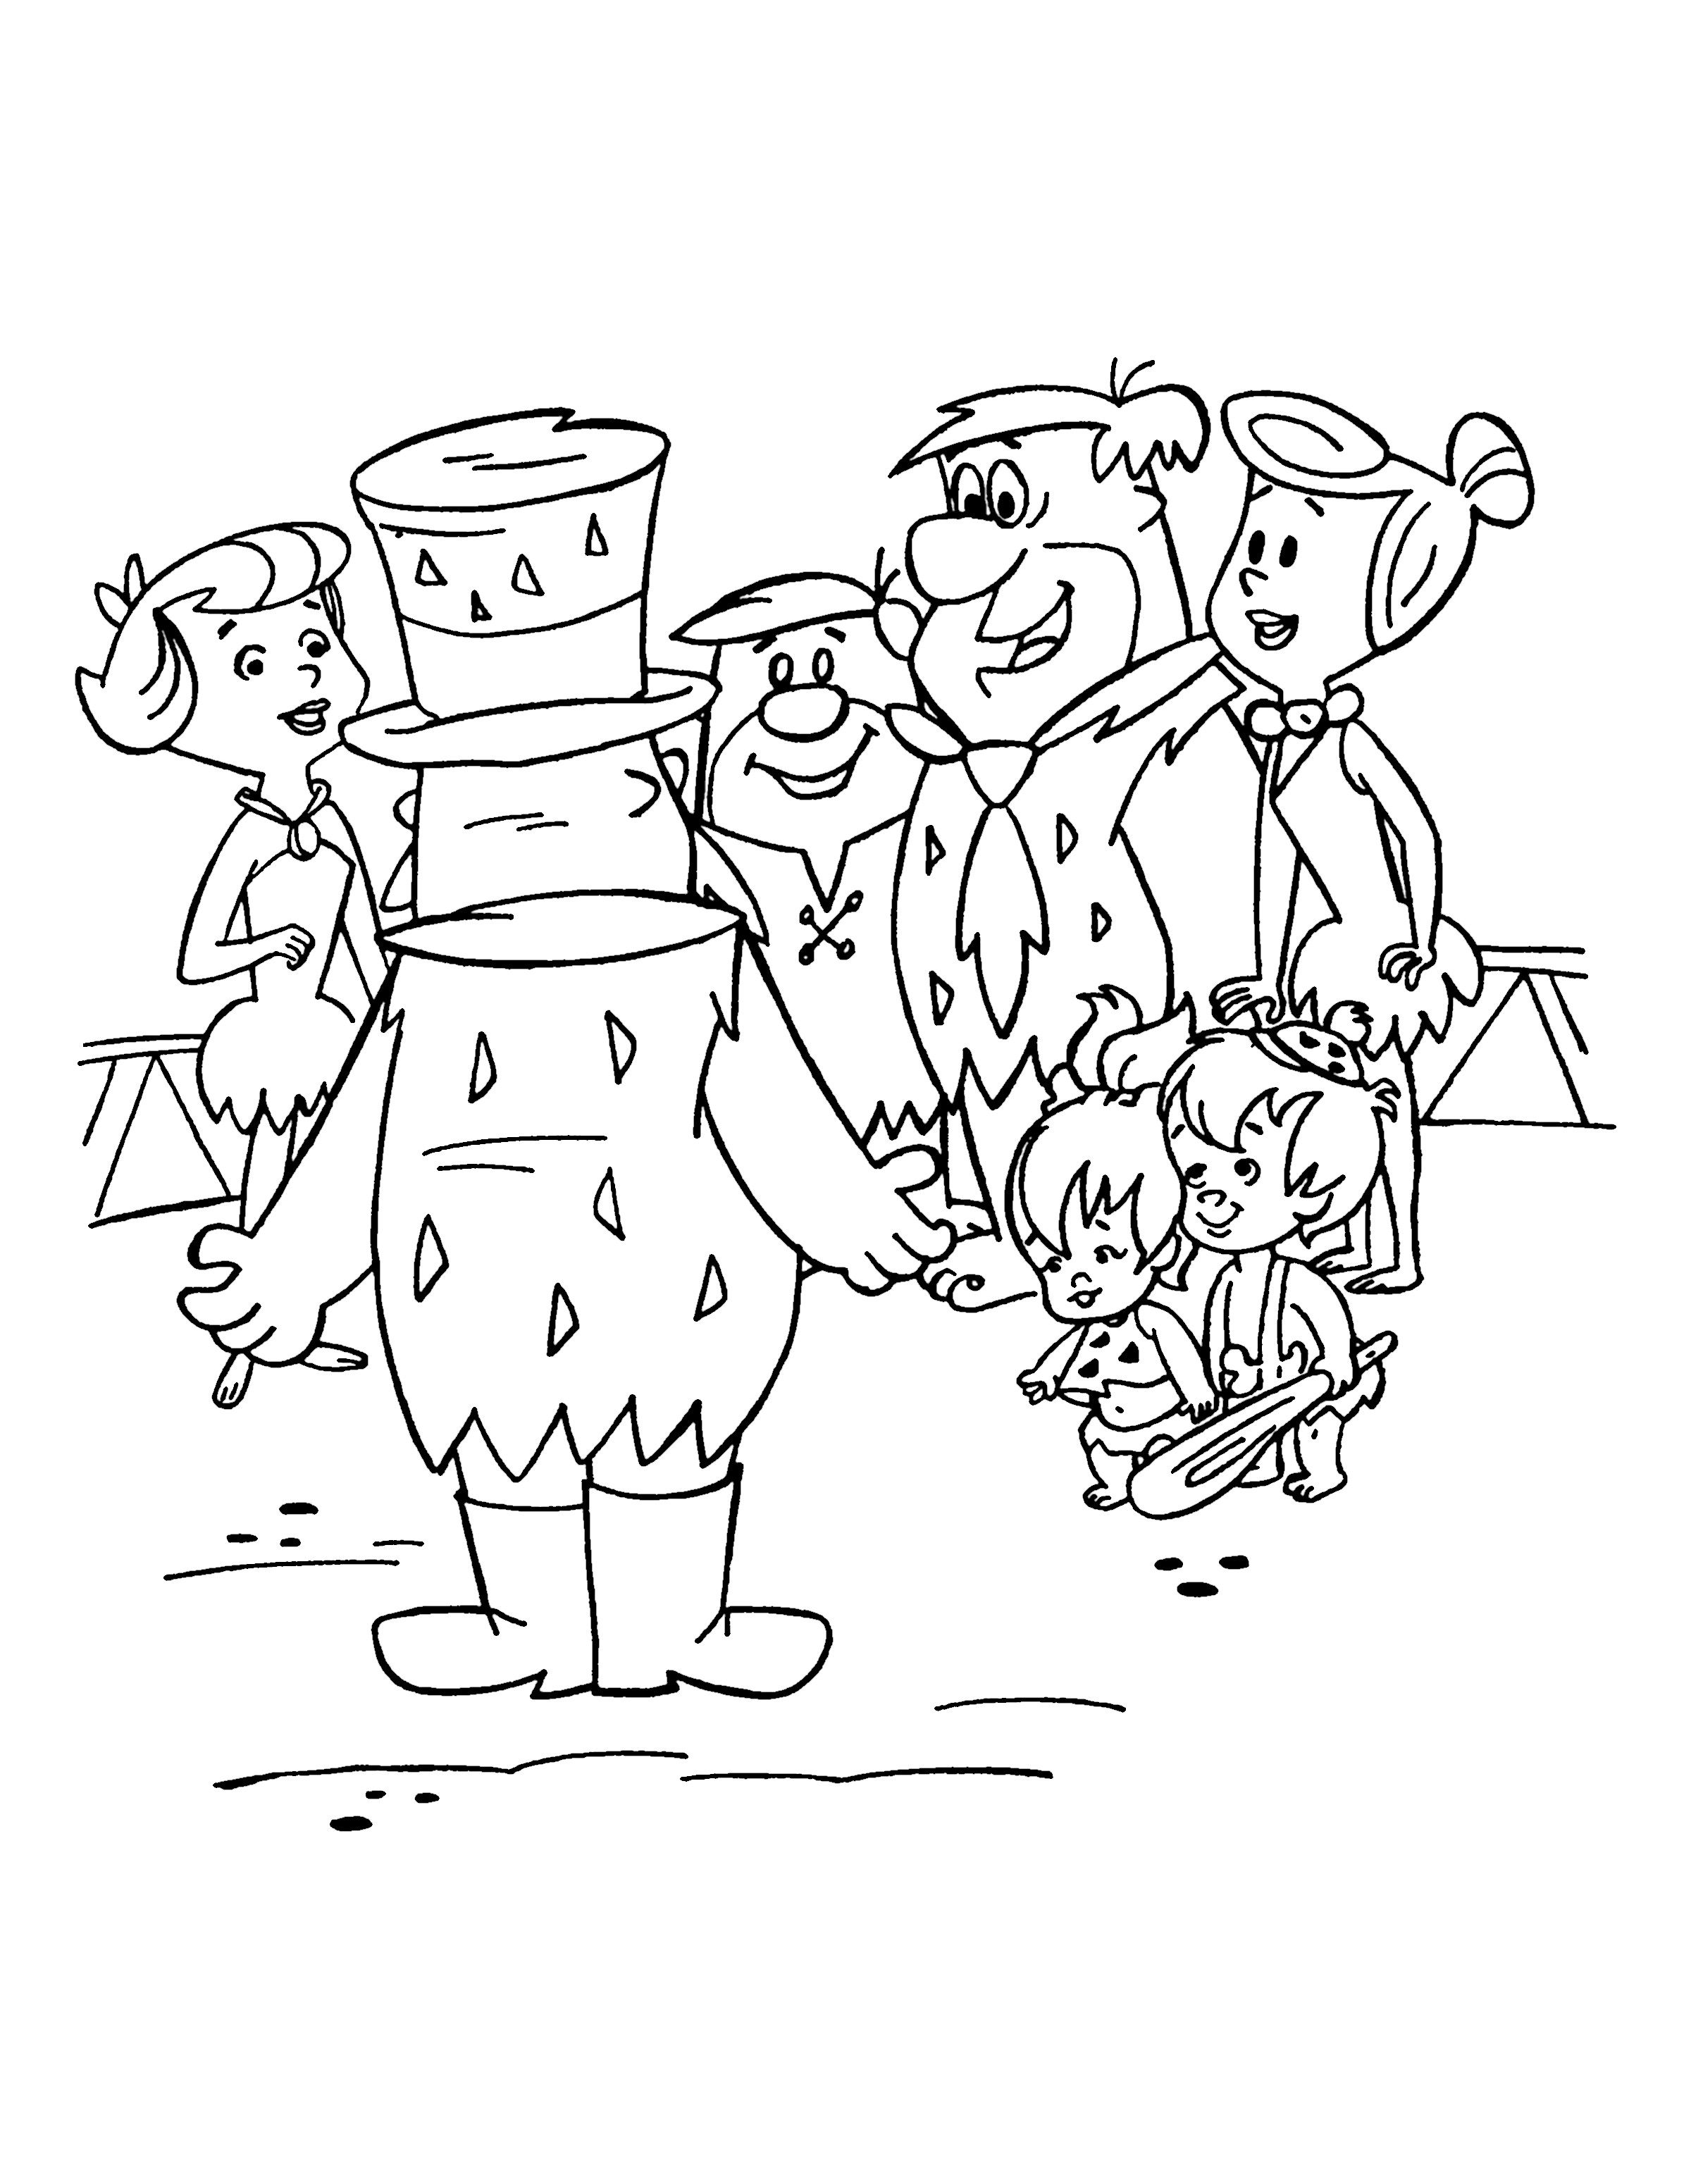 The Flintstones Coloring Pages 14 Coloring Pages Coloring Books Quote Coloring Pages